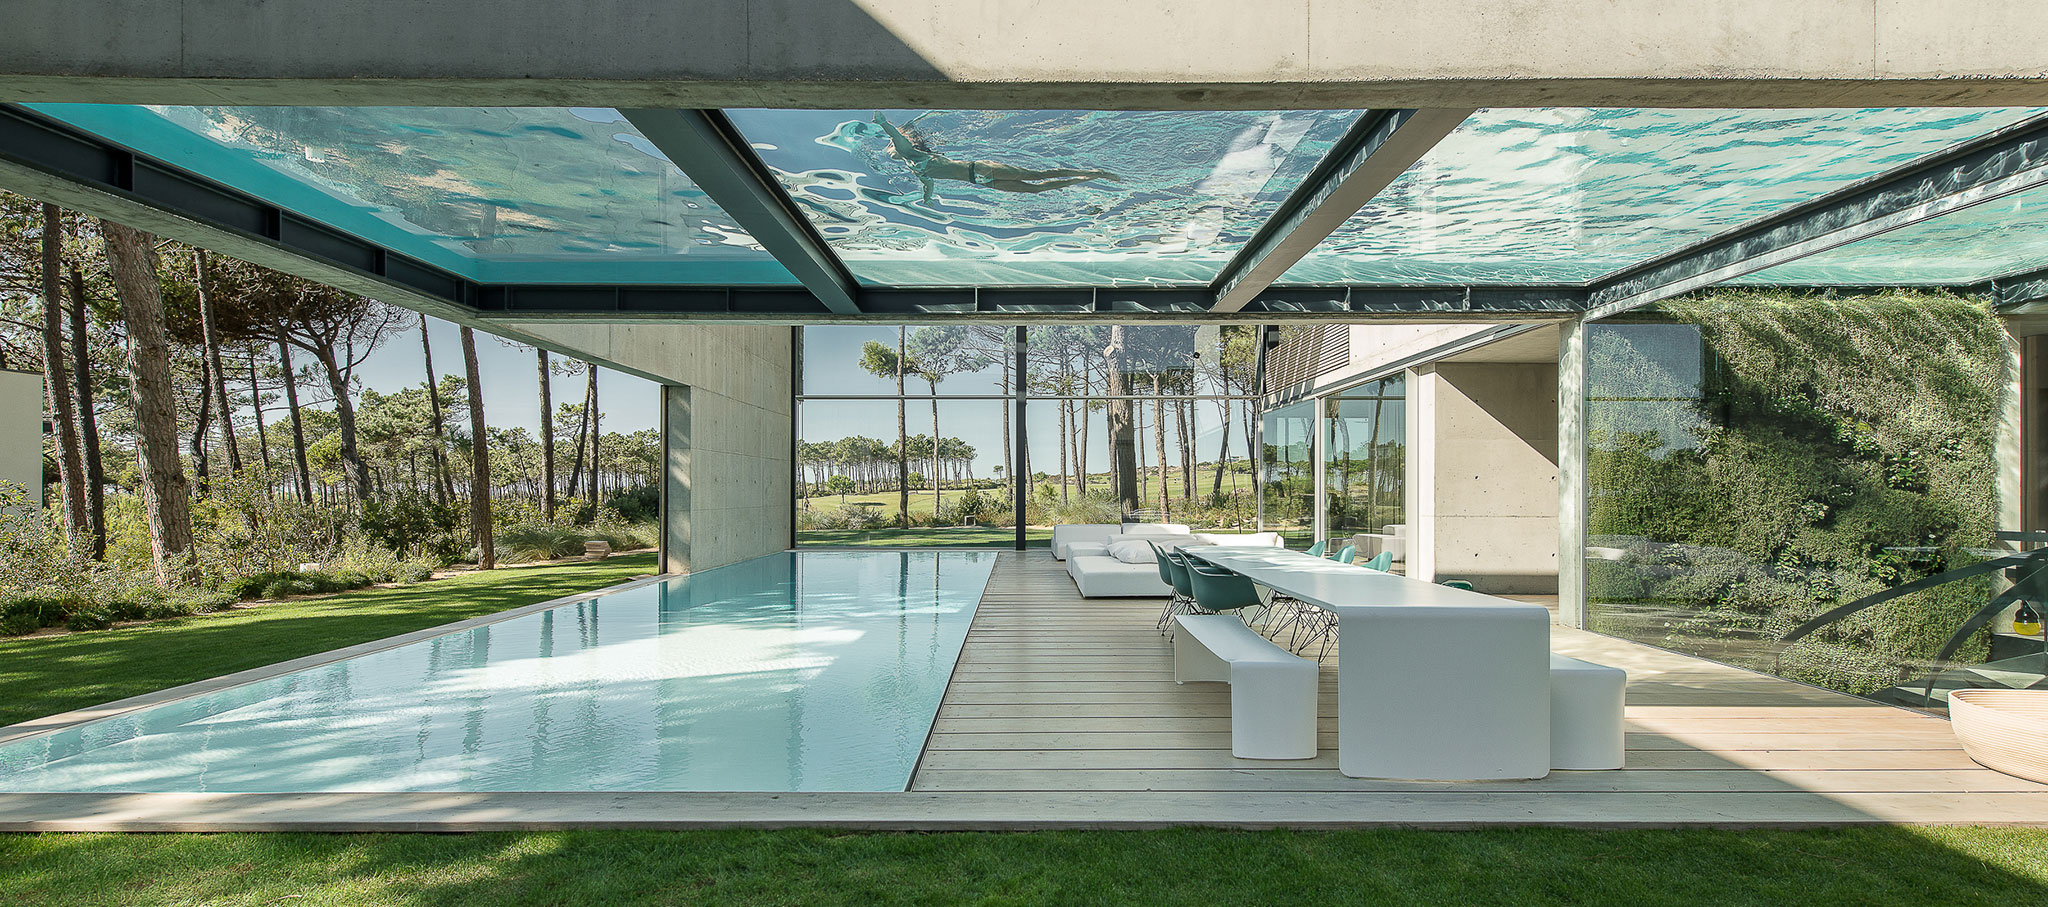 Pool Above Swimming Pool. The Wall House By Guedes Cruz Arquitectos